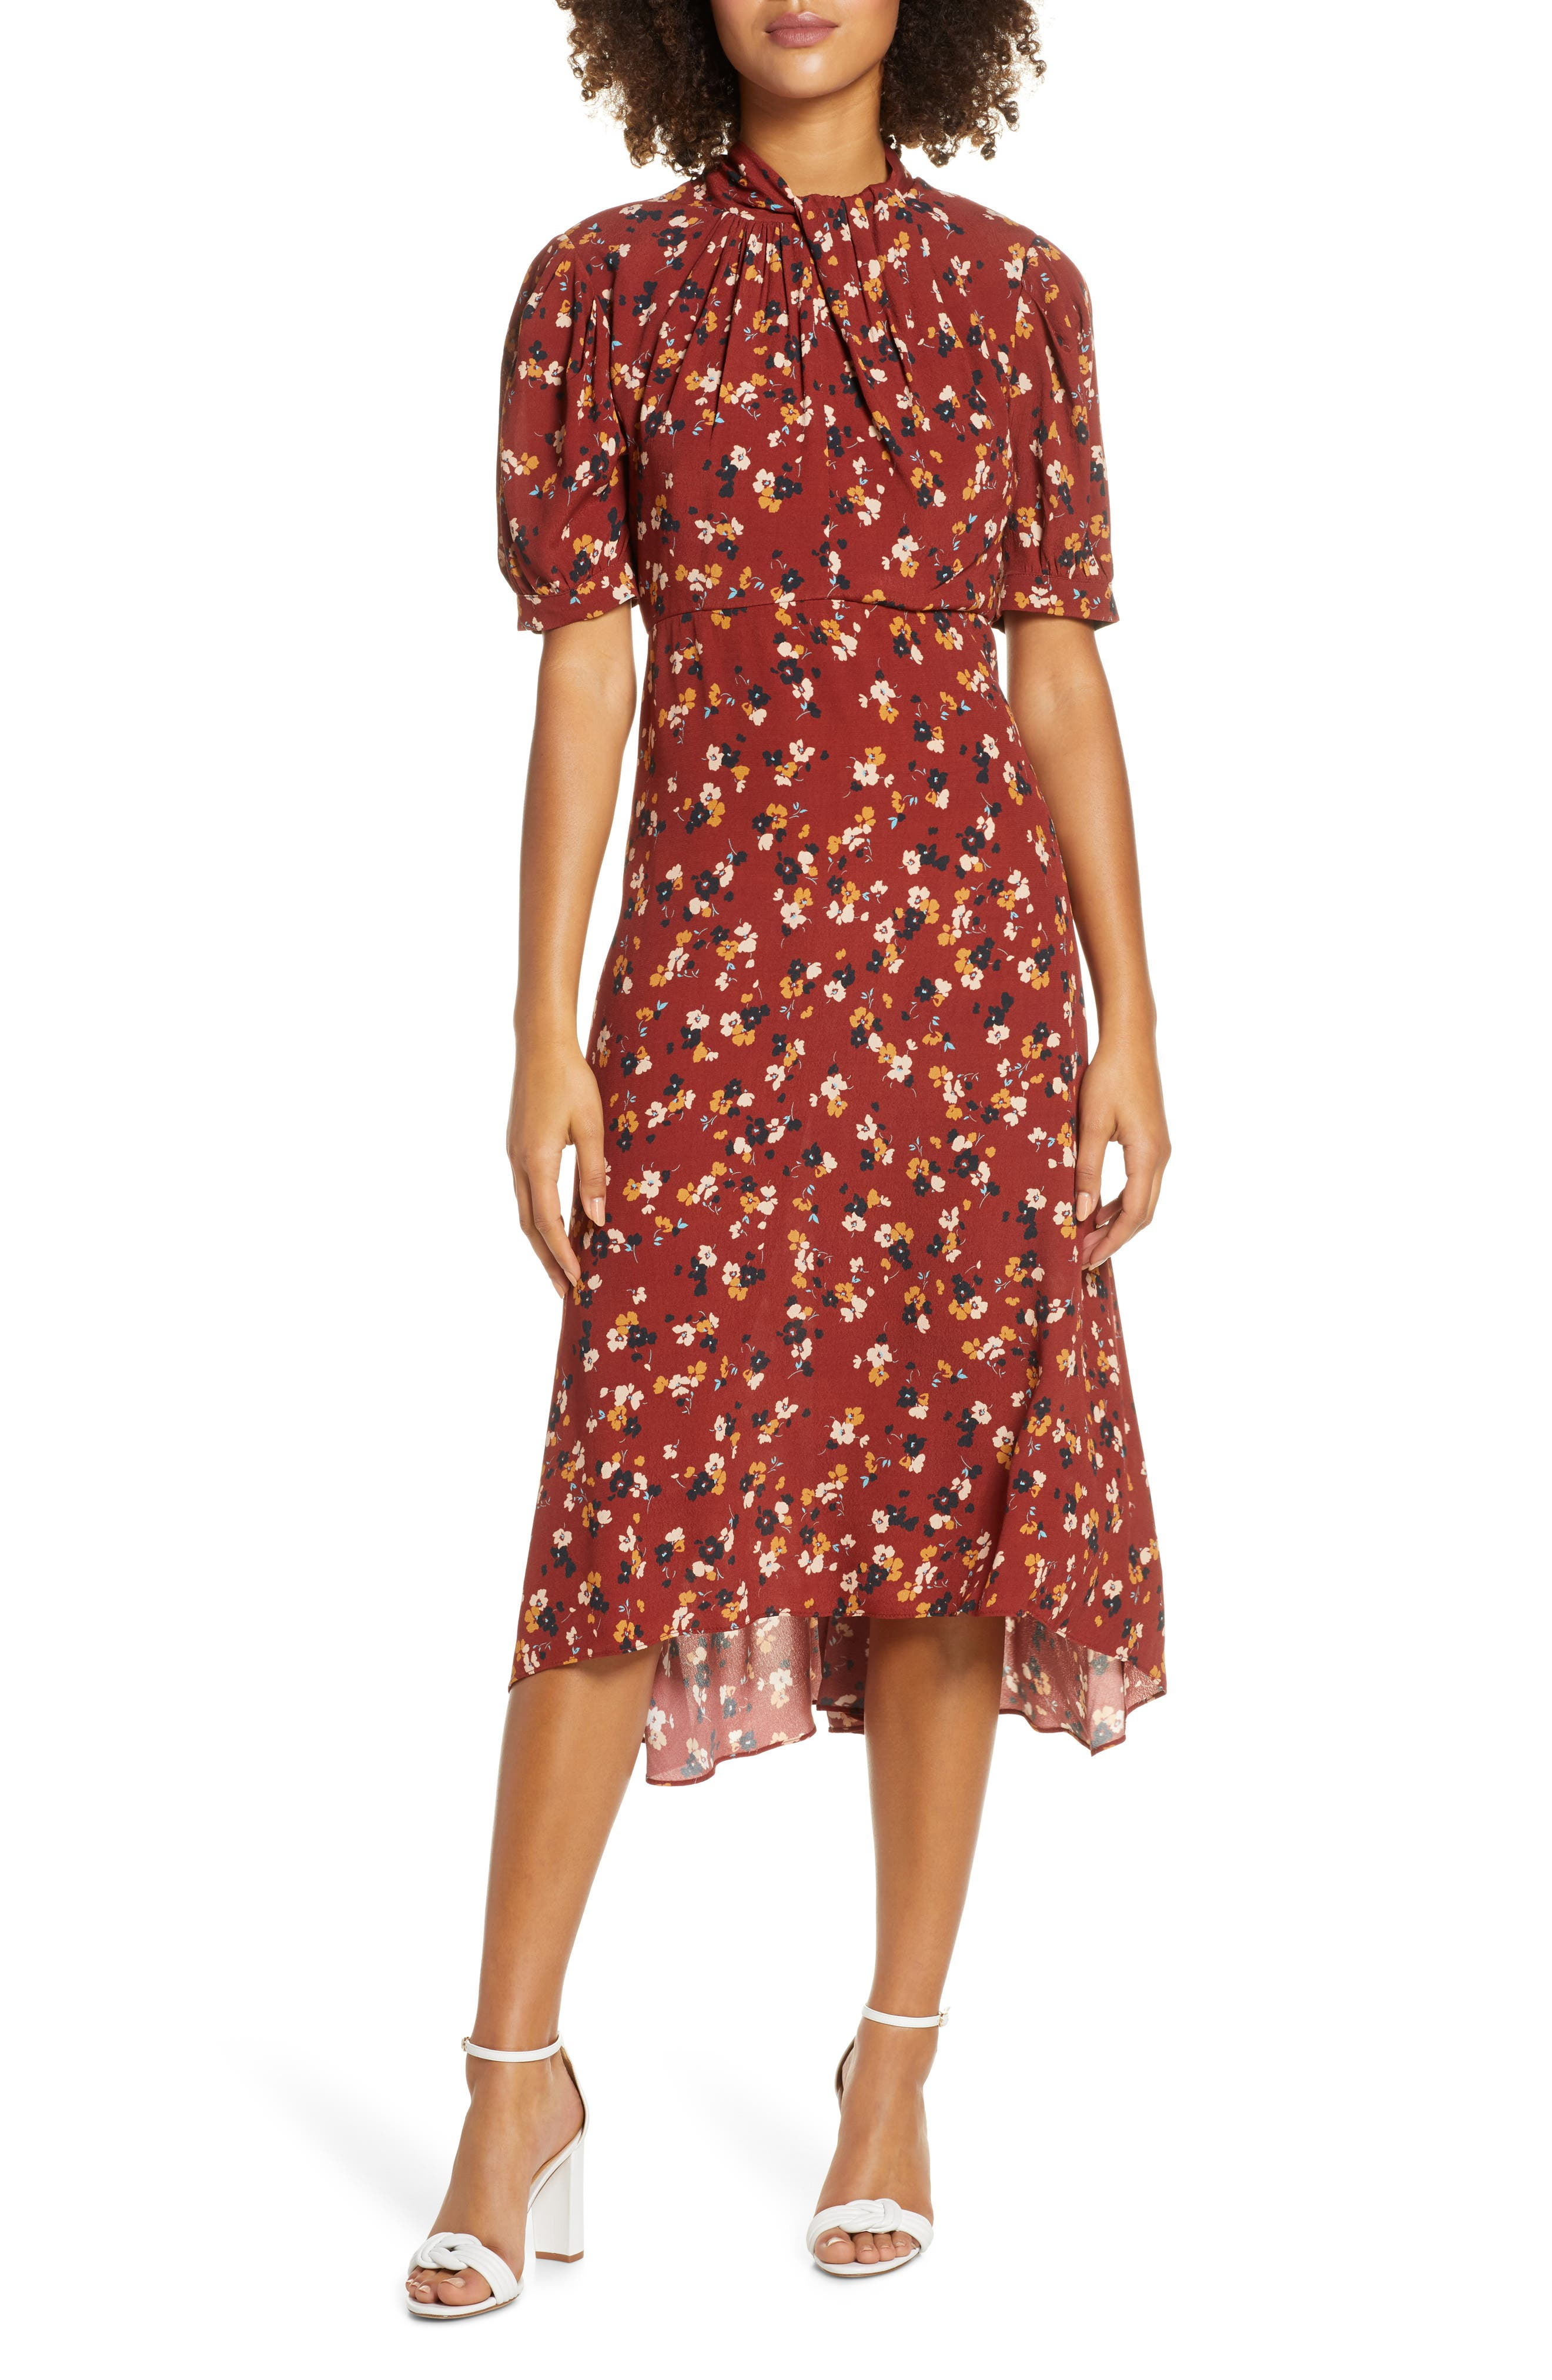 1930s Day Dresses, Afternoon Dresses History Womens Ever New Ditzy Floral Highlow Dress $159.00 AT vintagedancer.com